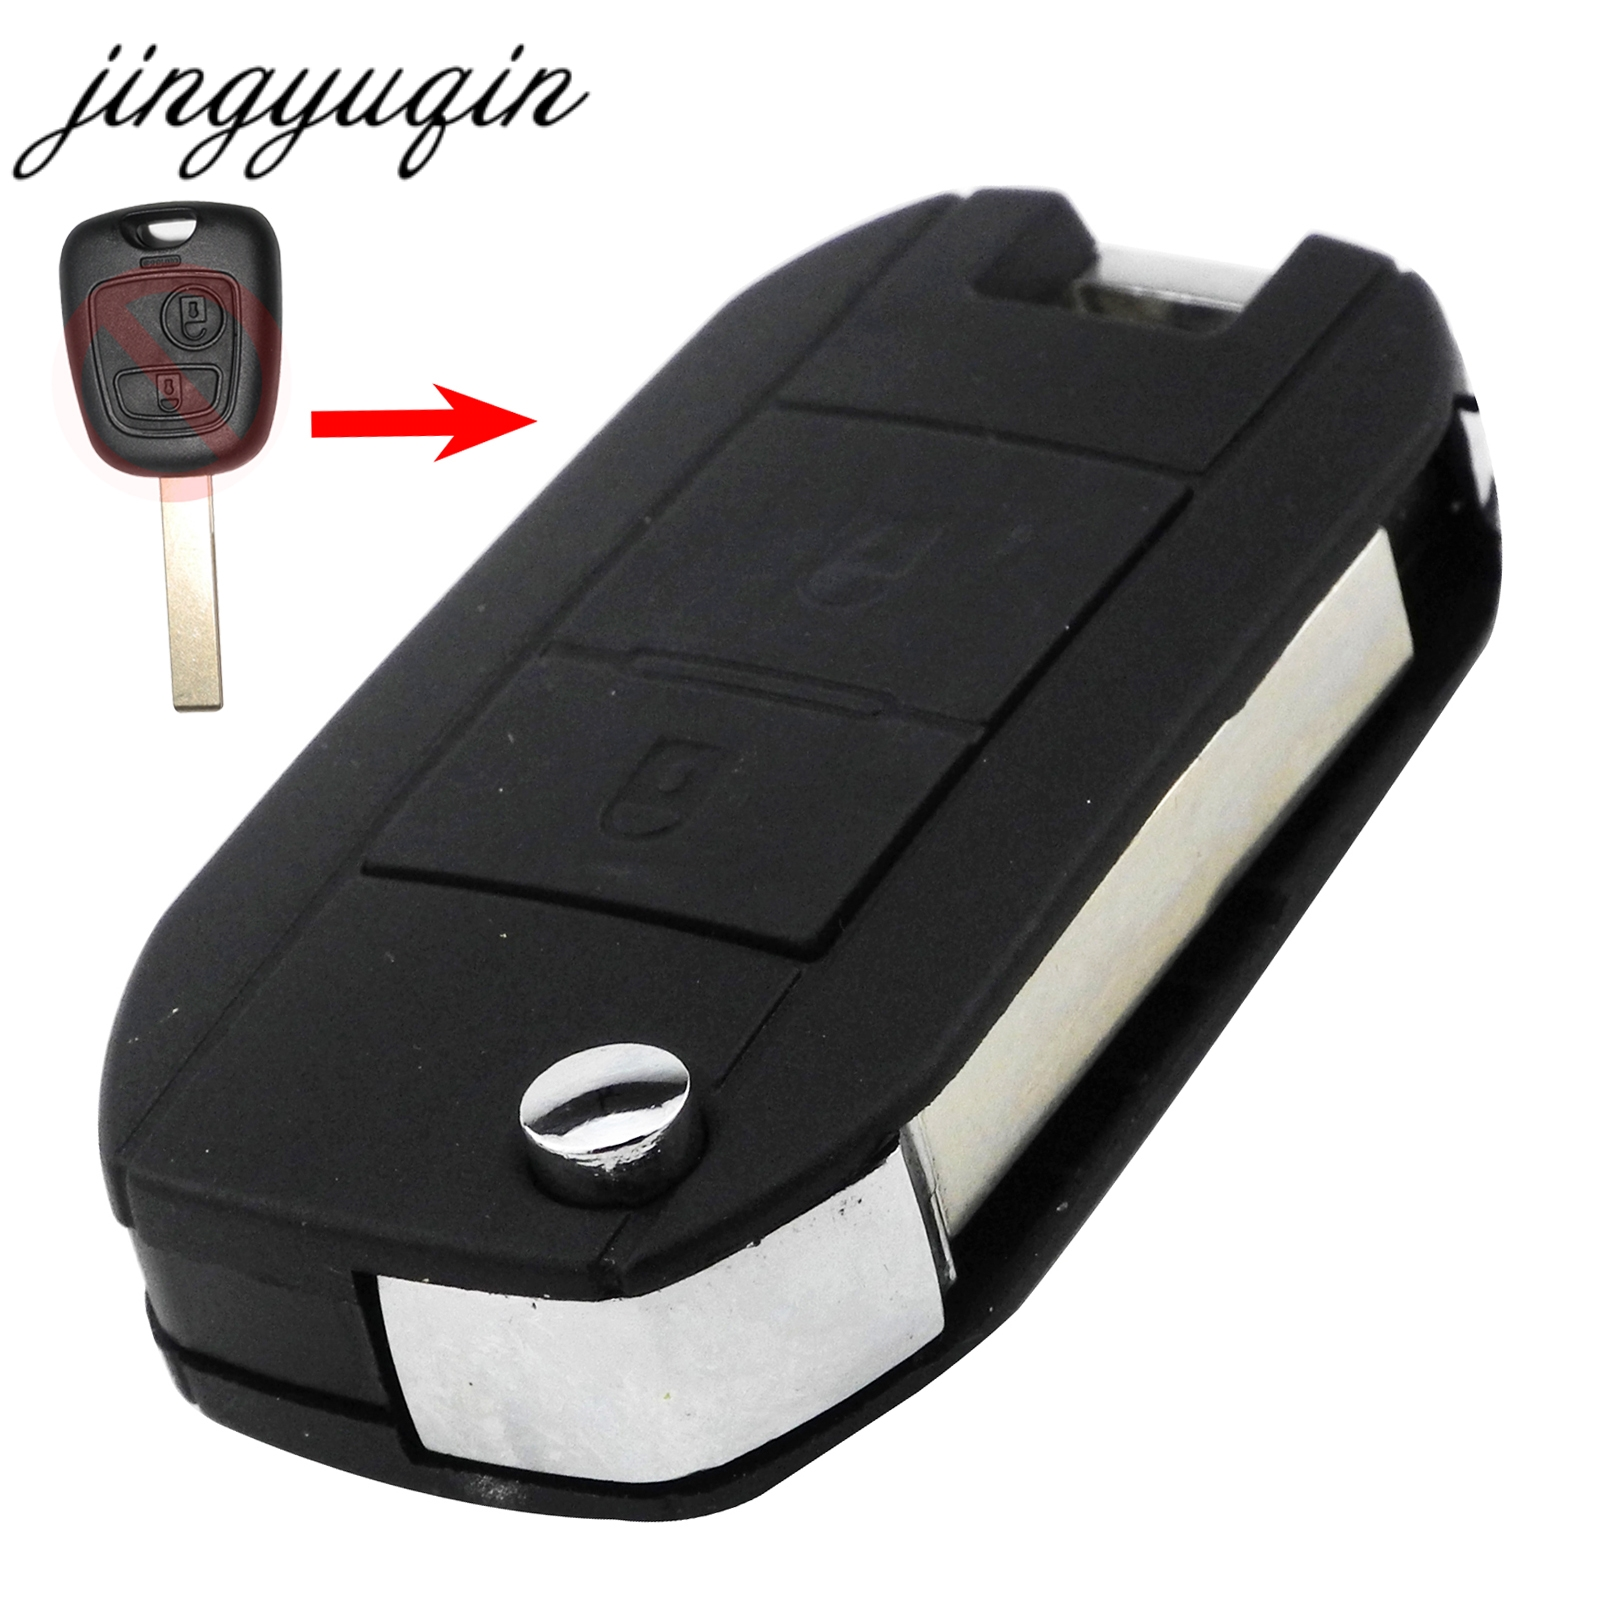 jingyuqin VA2/HCA Car Flip Folding Key Shell For Peugeot 307 107 207 607 407 Modified Remote Entry Key Fob Case 2 Buttons(China)